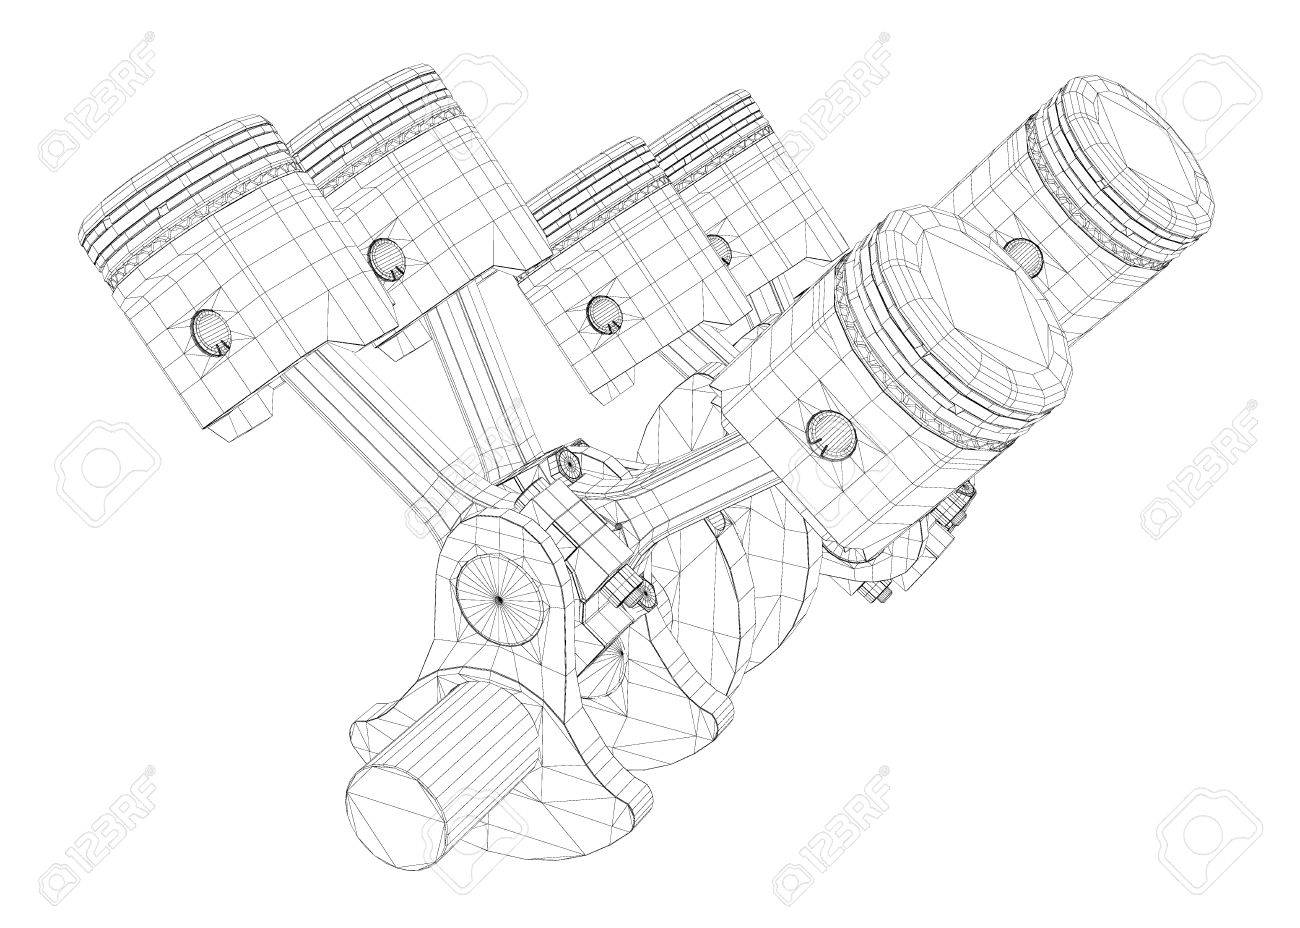 pistons, v8 engine, body structure, wire model stock photo, picture and  royalty free image. image 44163691.  123rf.com